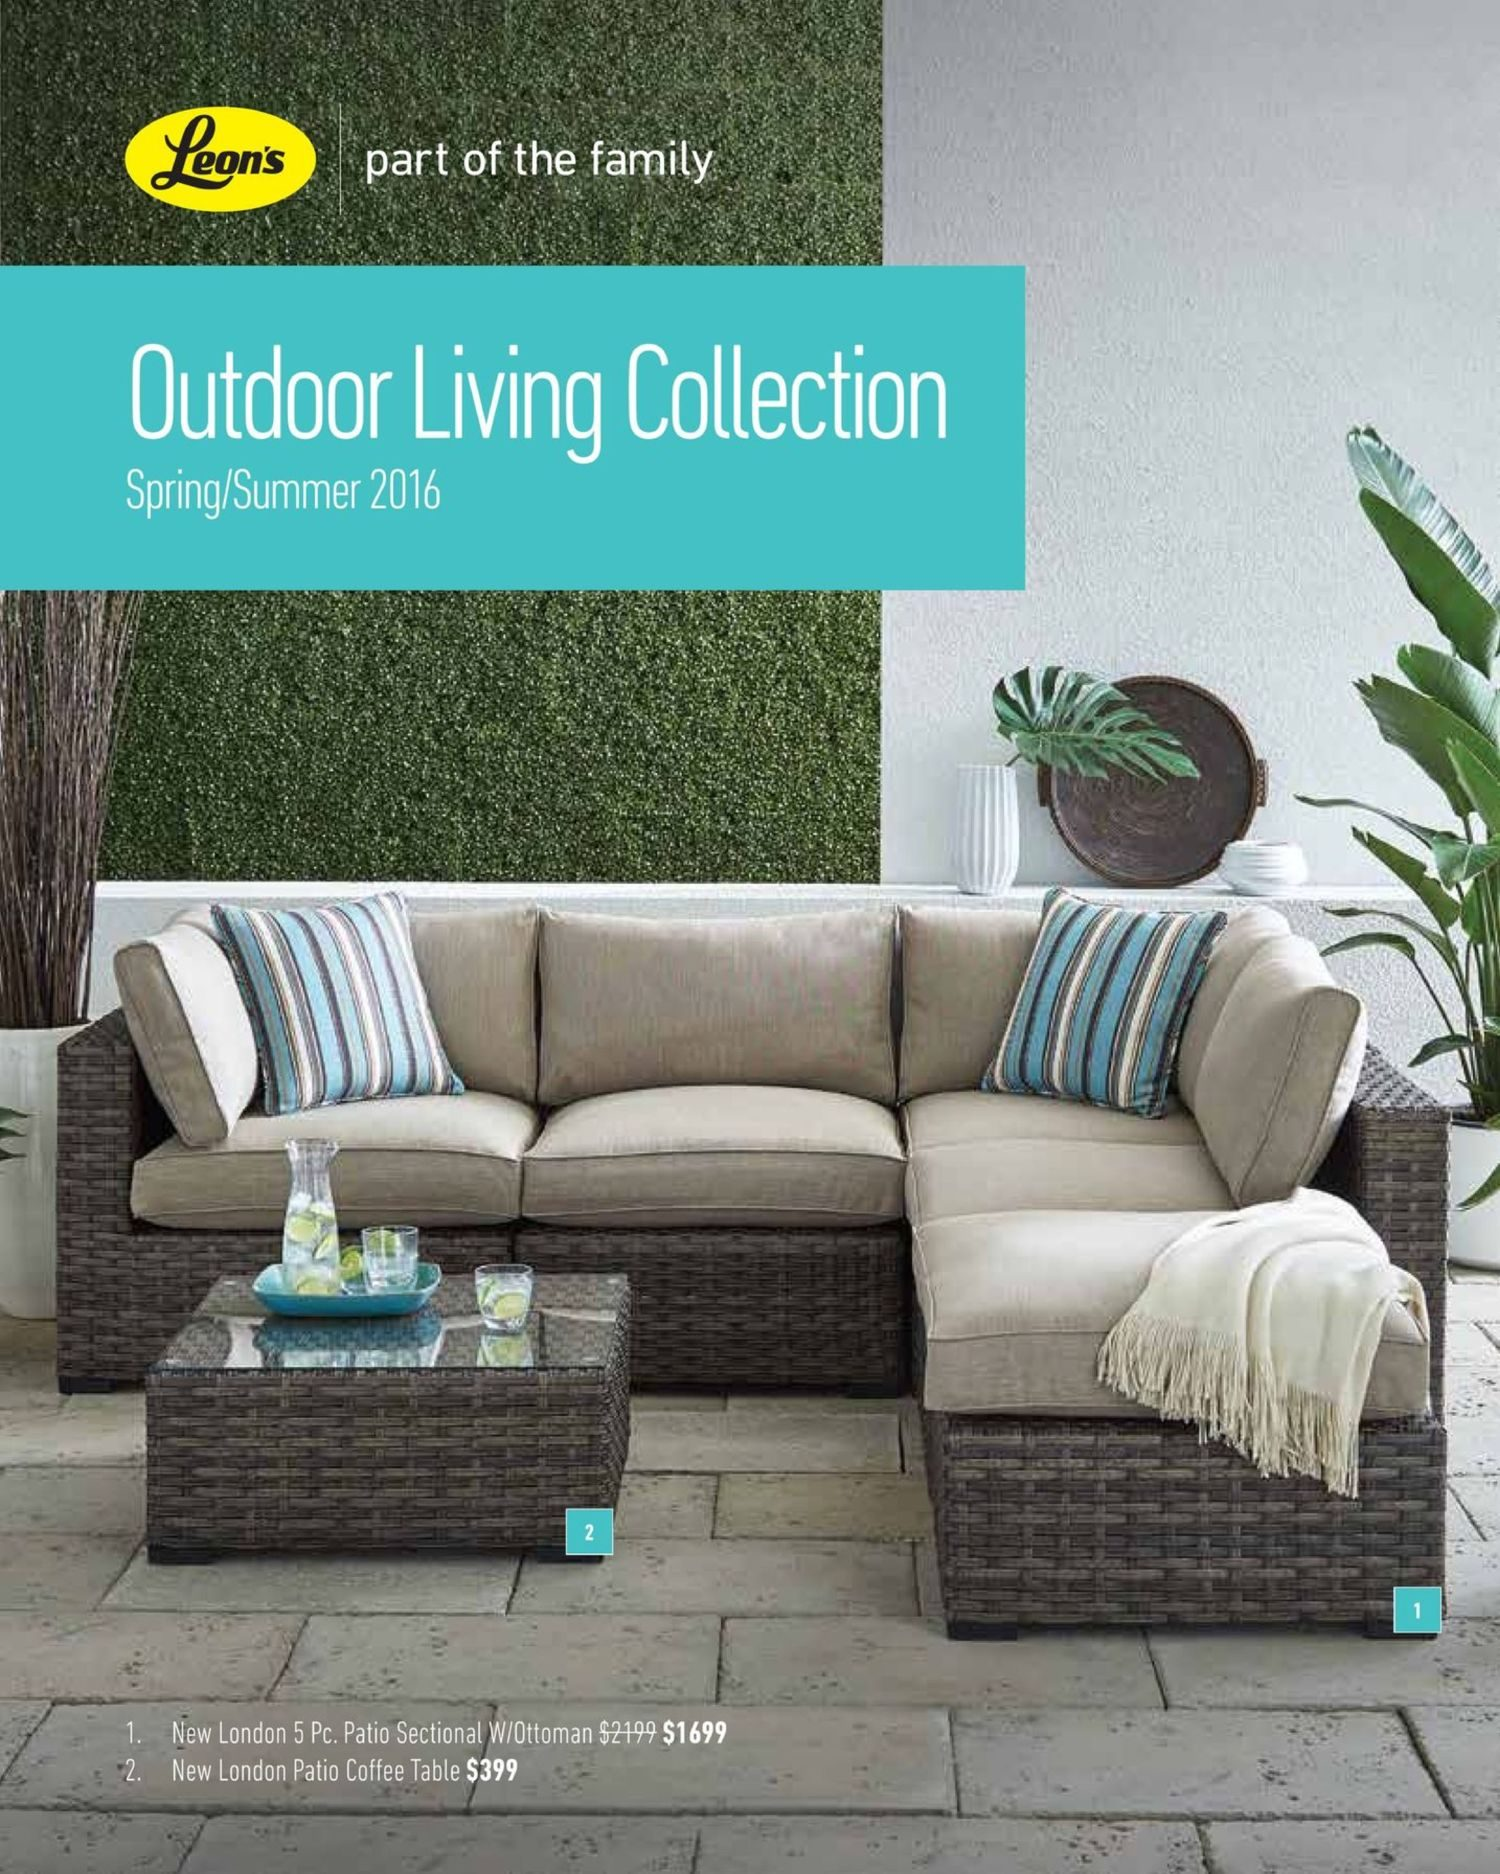 Strange Leons Weekly Flyer Outdoor Living Collection Spring Unemploymentrelief Wooden Chair Designs For Living Room Unemploymentrelieforg